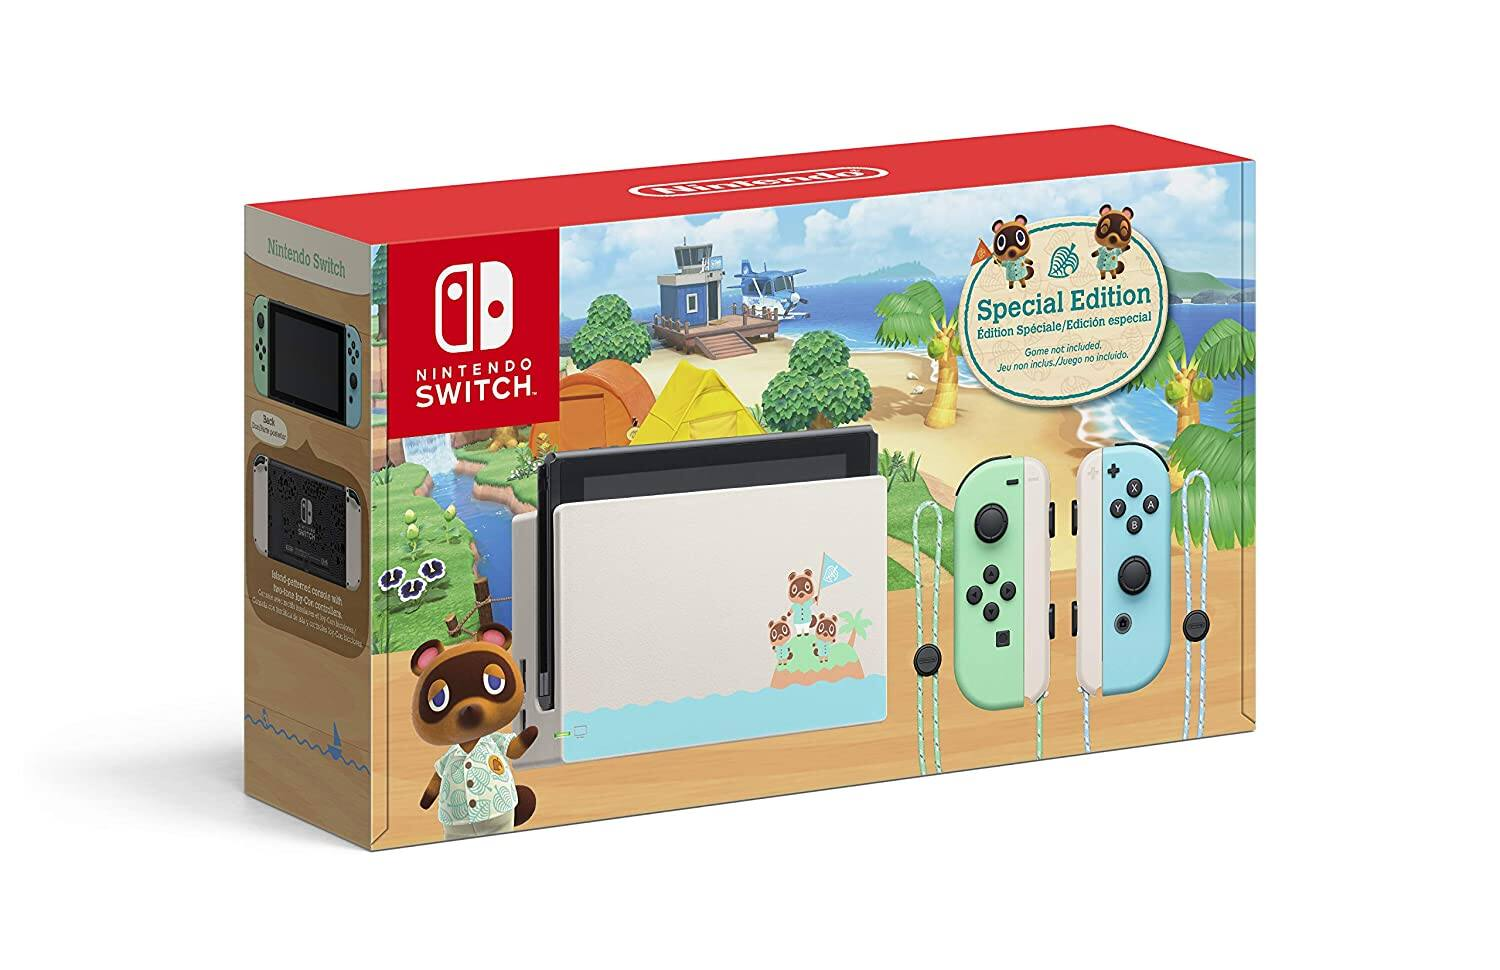 Nintendo Switch - Animal Crossing_ New Horizons Edition $299.99